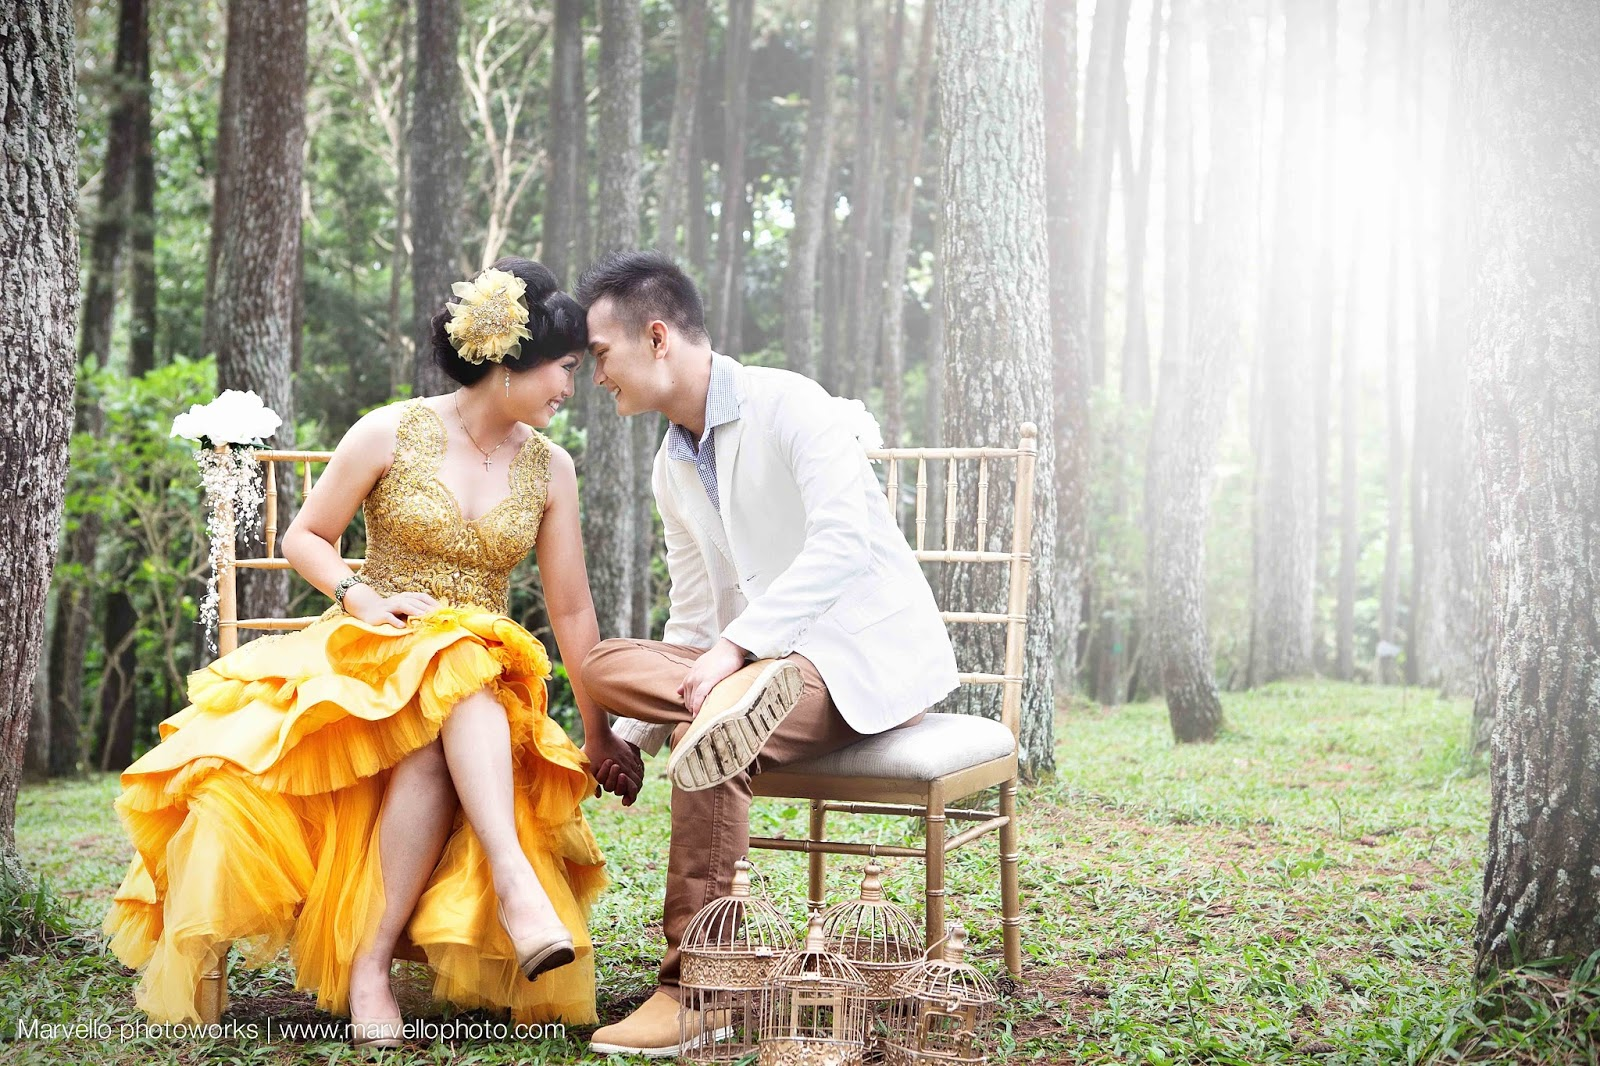 Marvello photoworks we make our own fairytale gown by jimmy fei fei make up by tien fei fei decoration by dvalue photos taken at hutan raya juanda bandung by marvello photoworks junglespirit Image collections